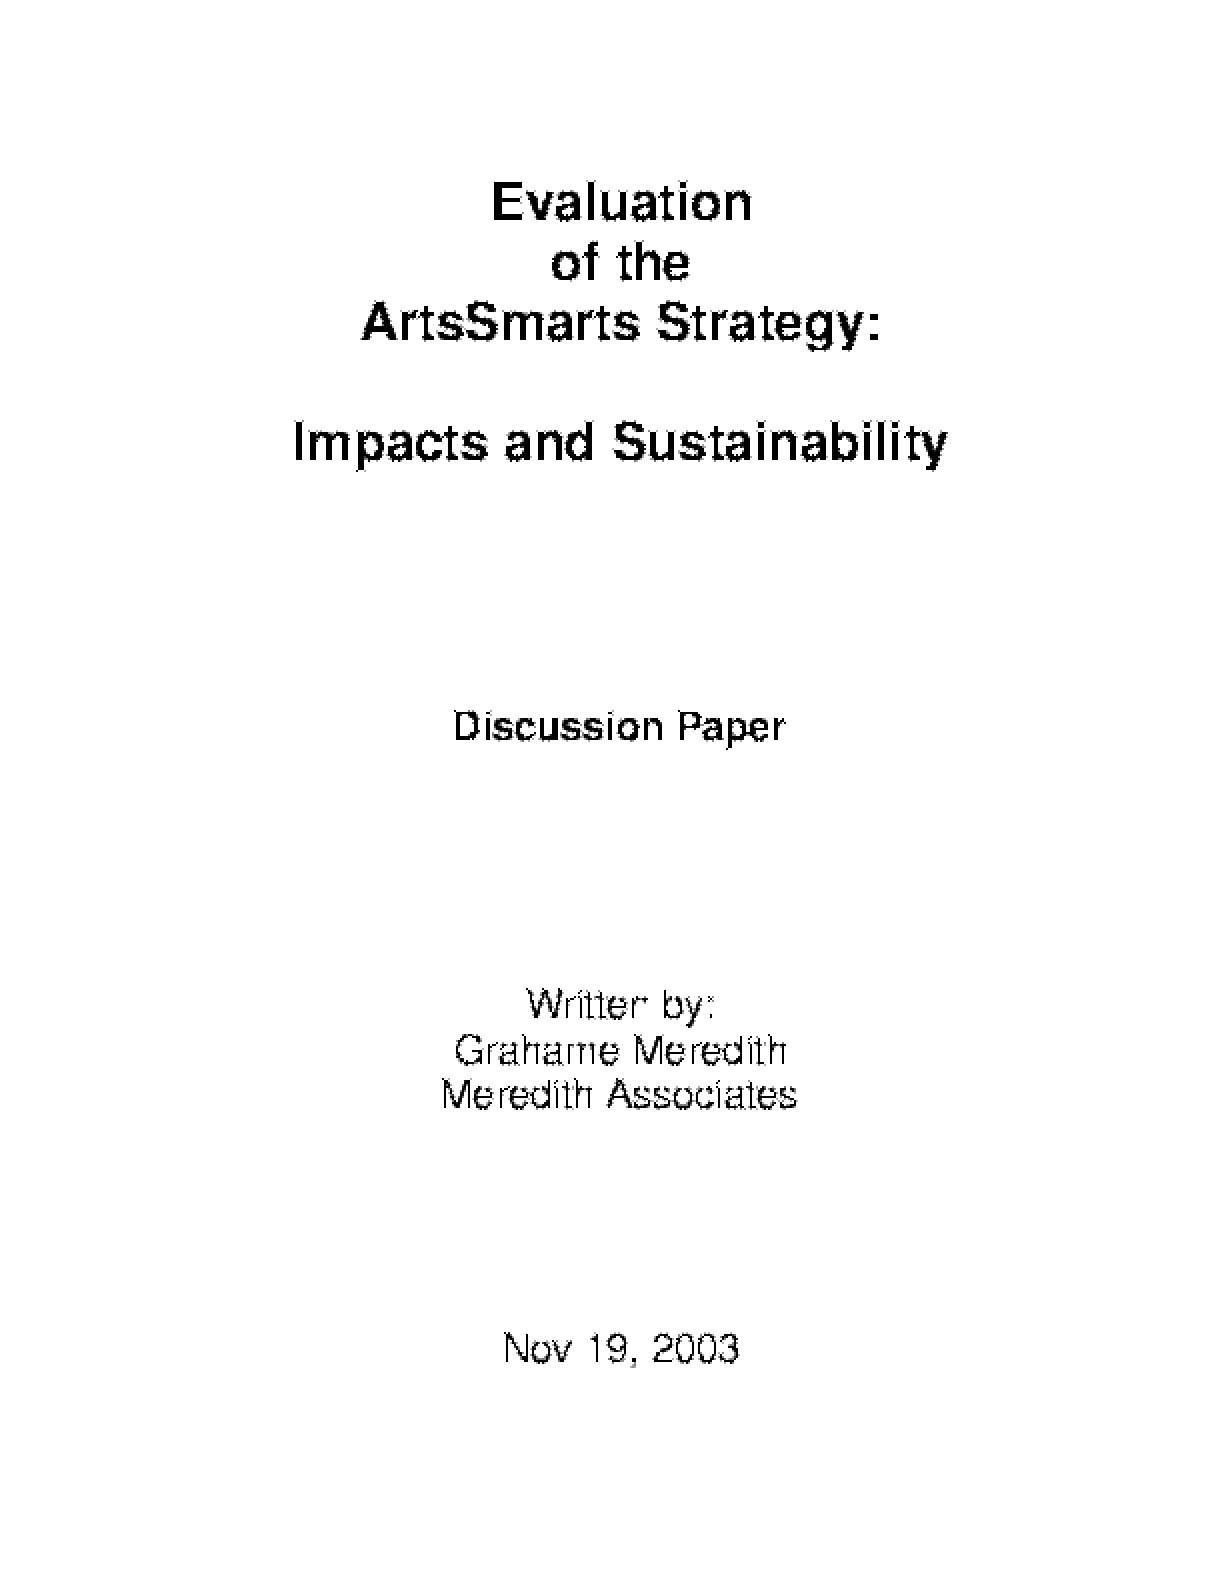 Evaluation of the ArtsSmarts Strategy: Impacts and Sustainability